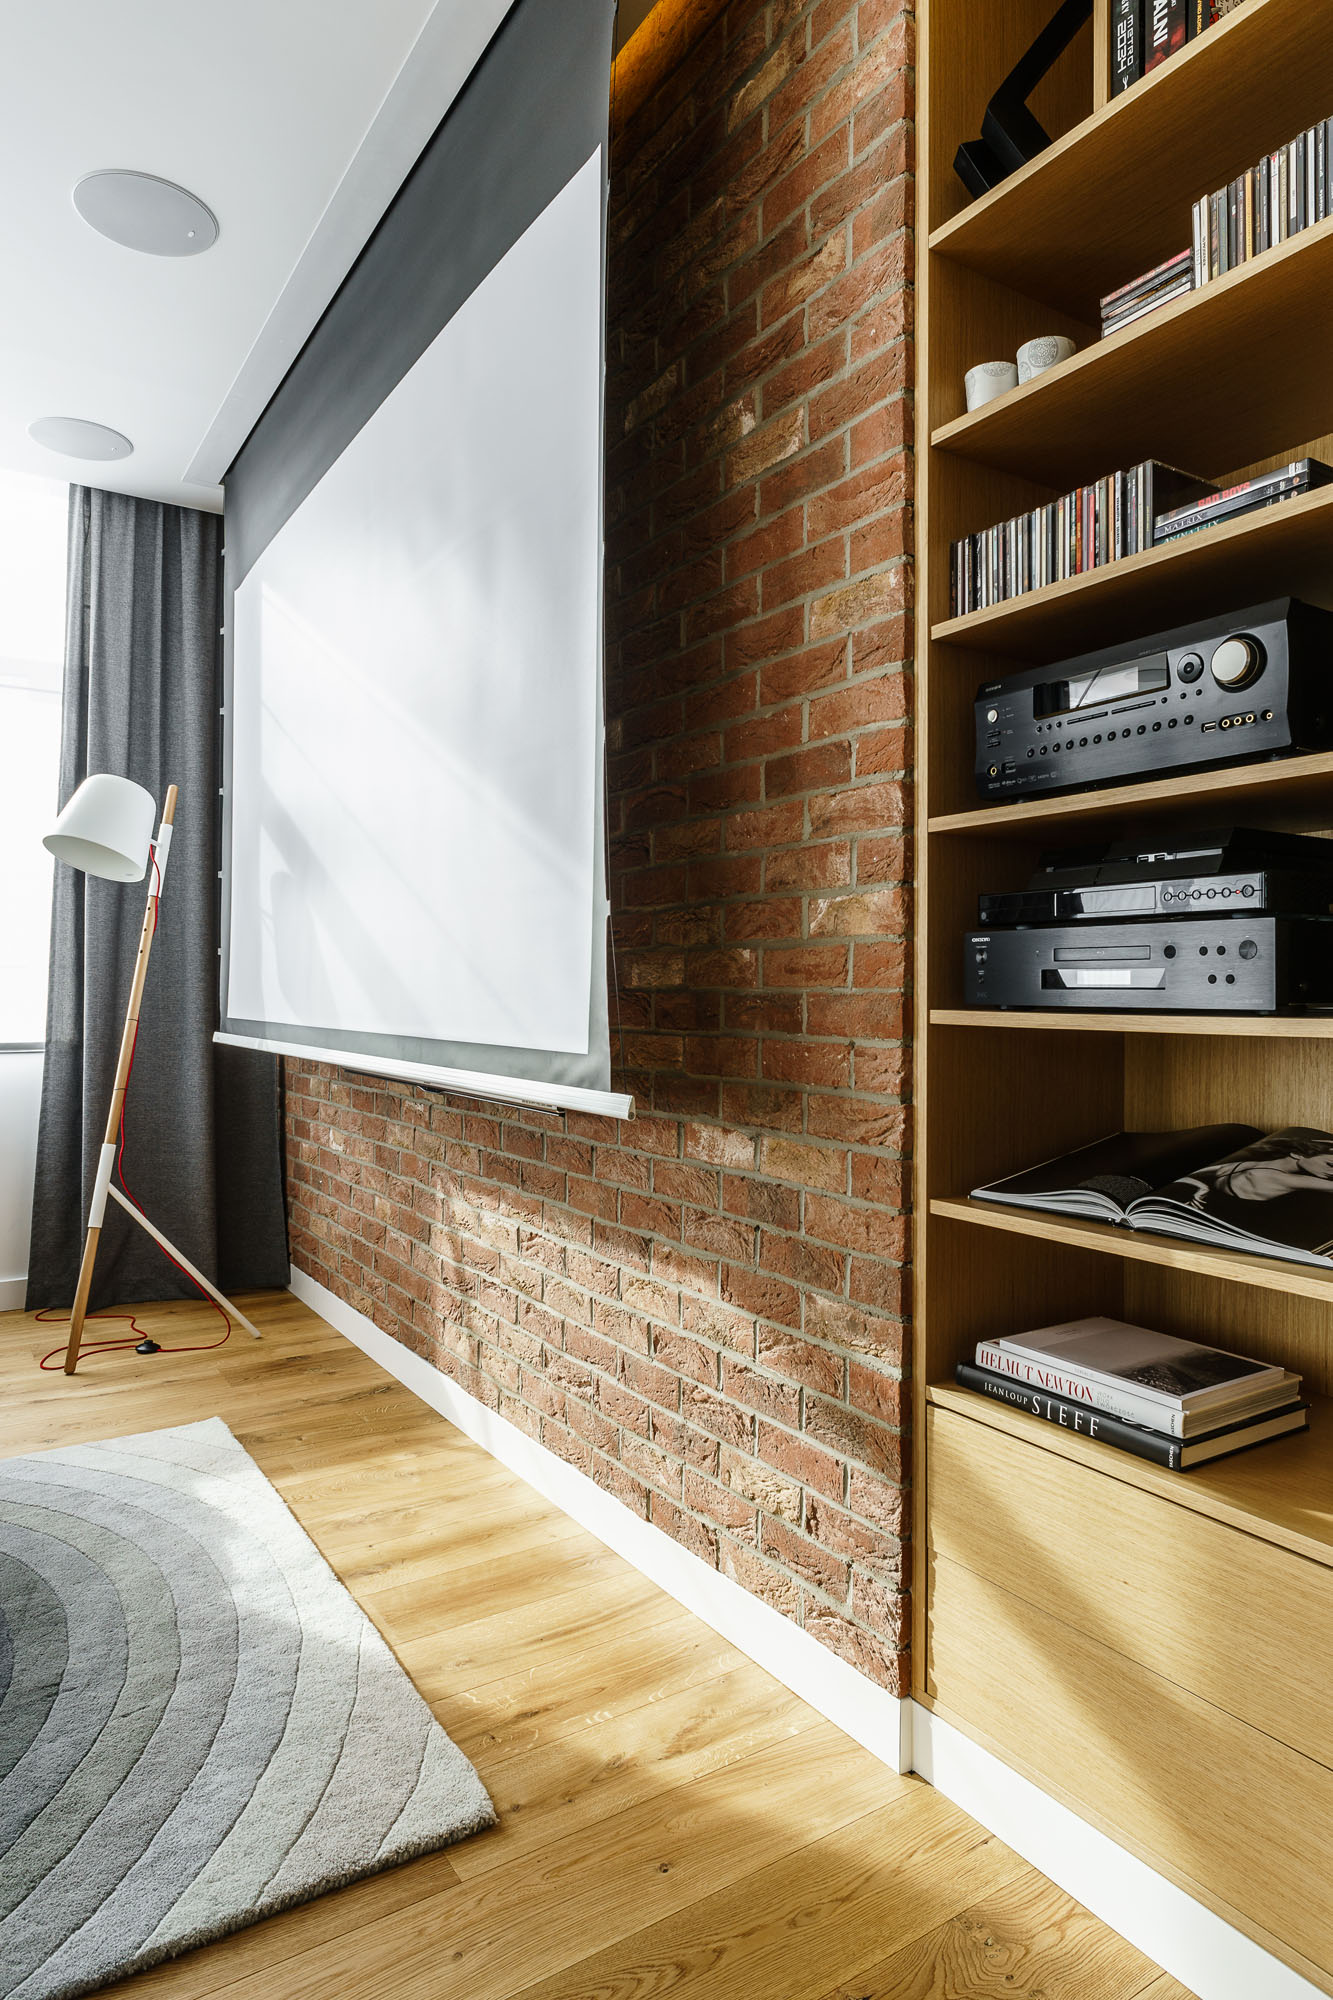 Modern Metallic, Wooden, White Theme Three Bedroom Apartment in Gdynia by Dragon Art-22